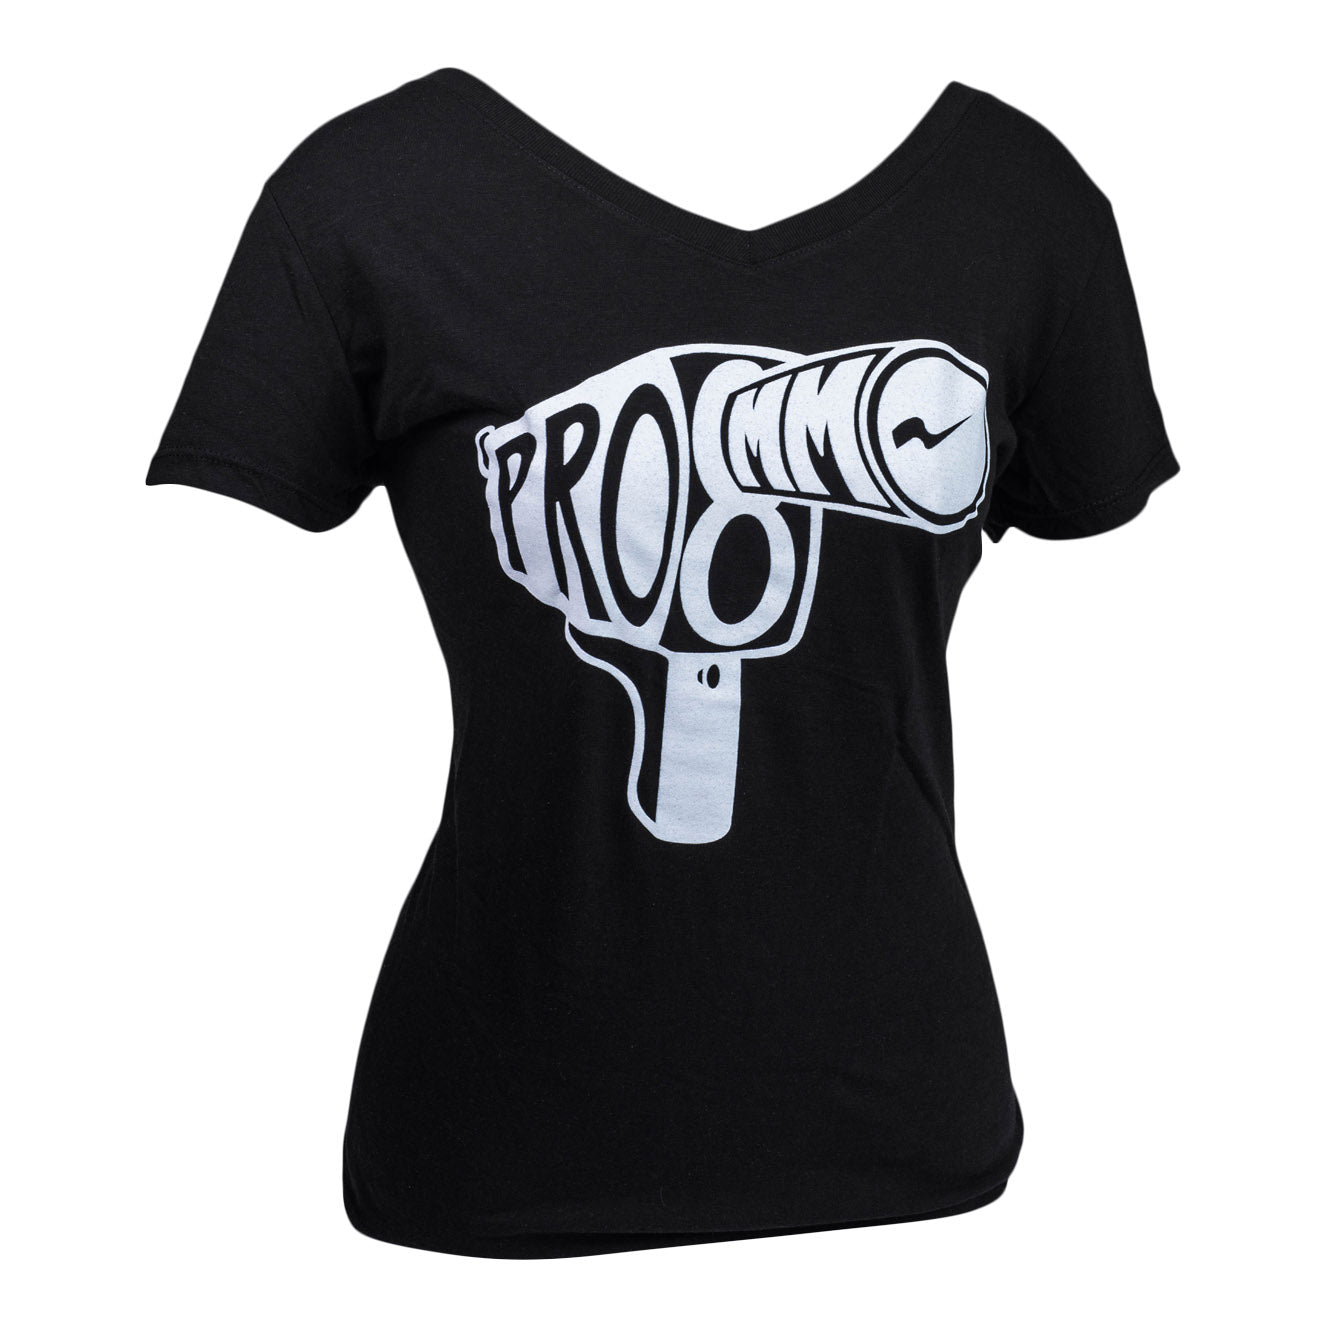 Pro8mm T-Shirt (Womens)